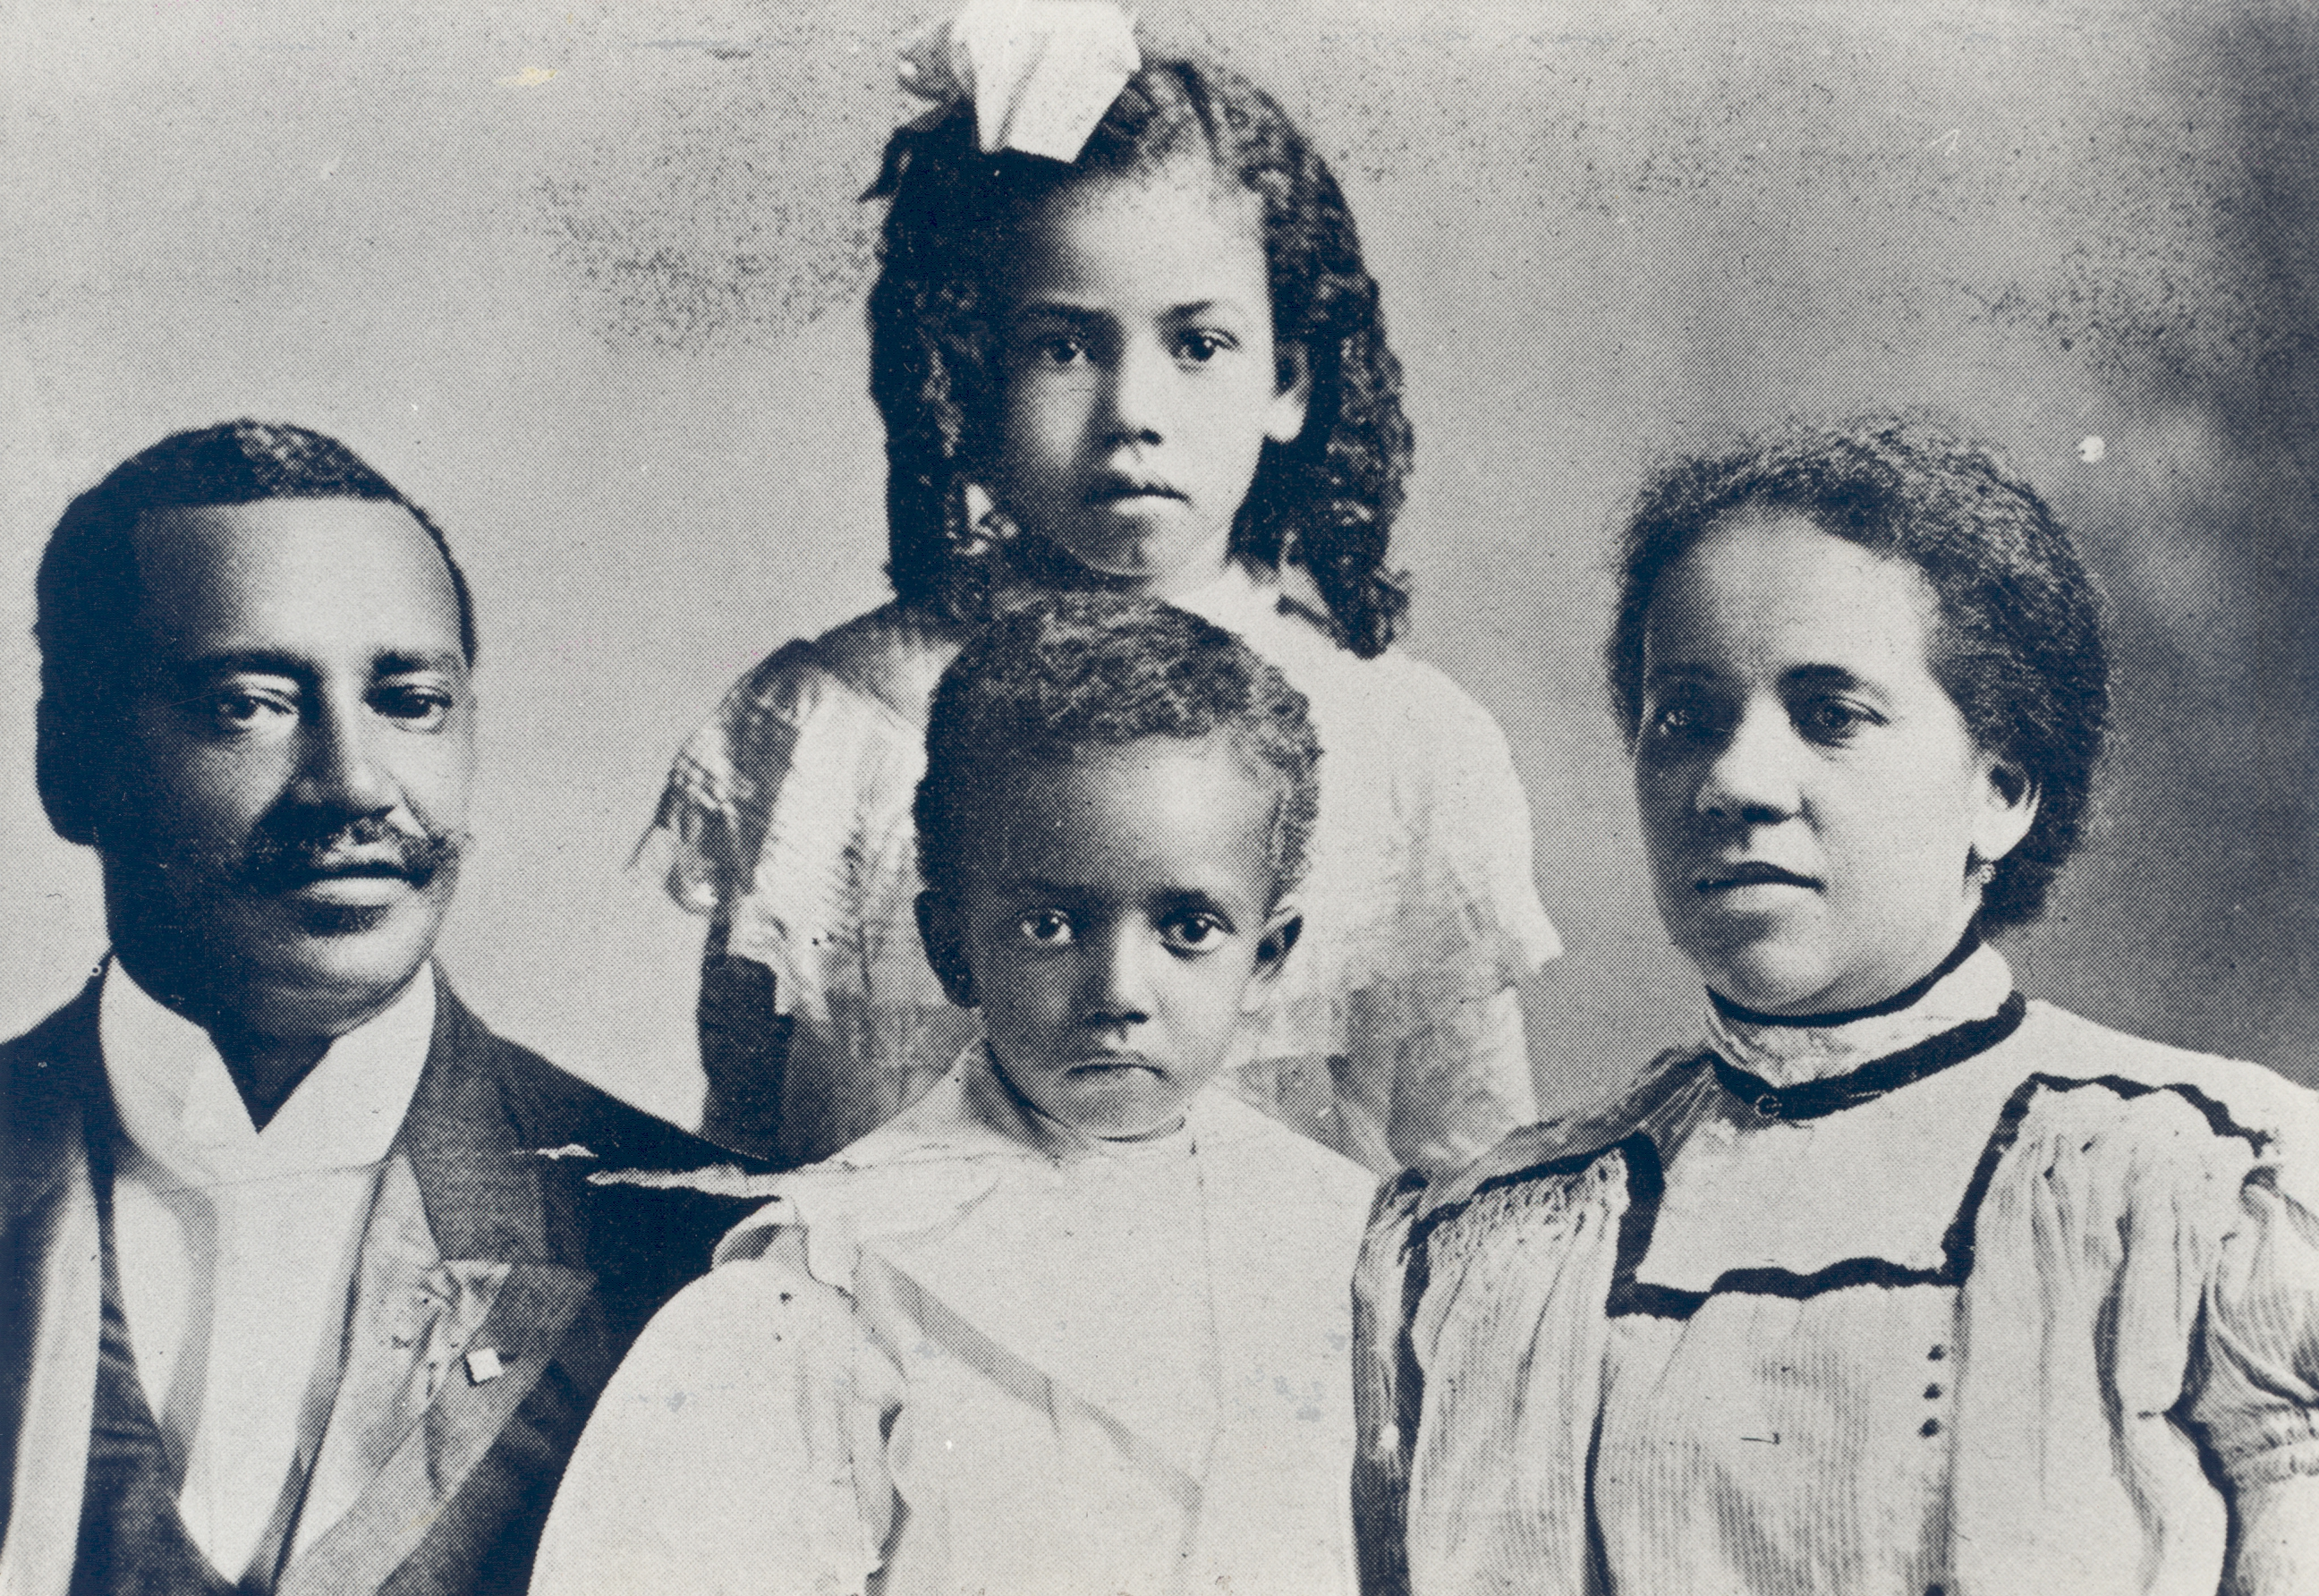 The Rev. Dr. William H. Sheppard, his wife, Lucy, and their children, ca. 1900 Photo credit: Presbyterian Historical Society